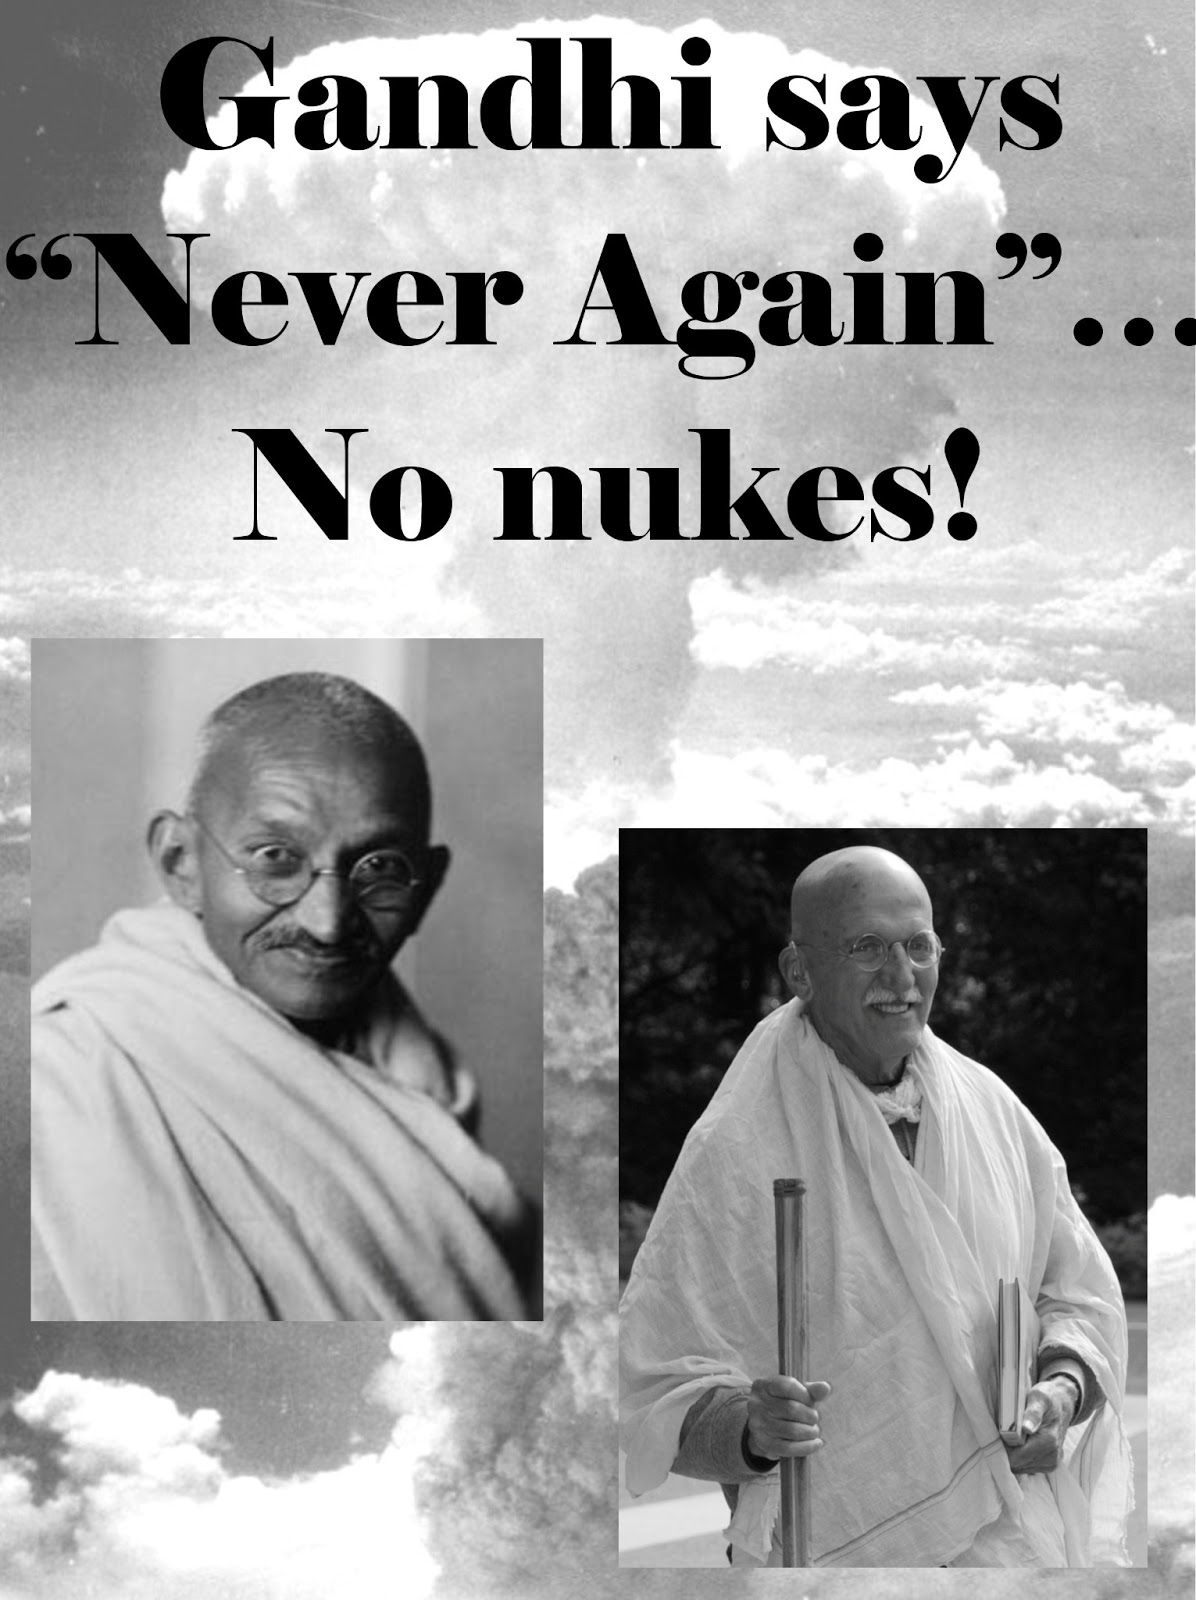 nuclear weapon and mahatma gandhi Mahatma gandhi was the leader of india's independence movement north korea willing to talk to us about giving up nuclear weapons, seoul says the pledge to halt missile tests comes after a busy year of launches by north korea.